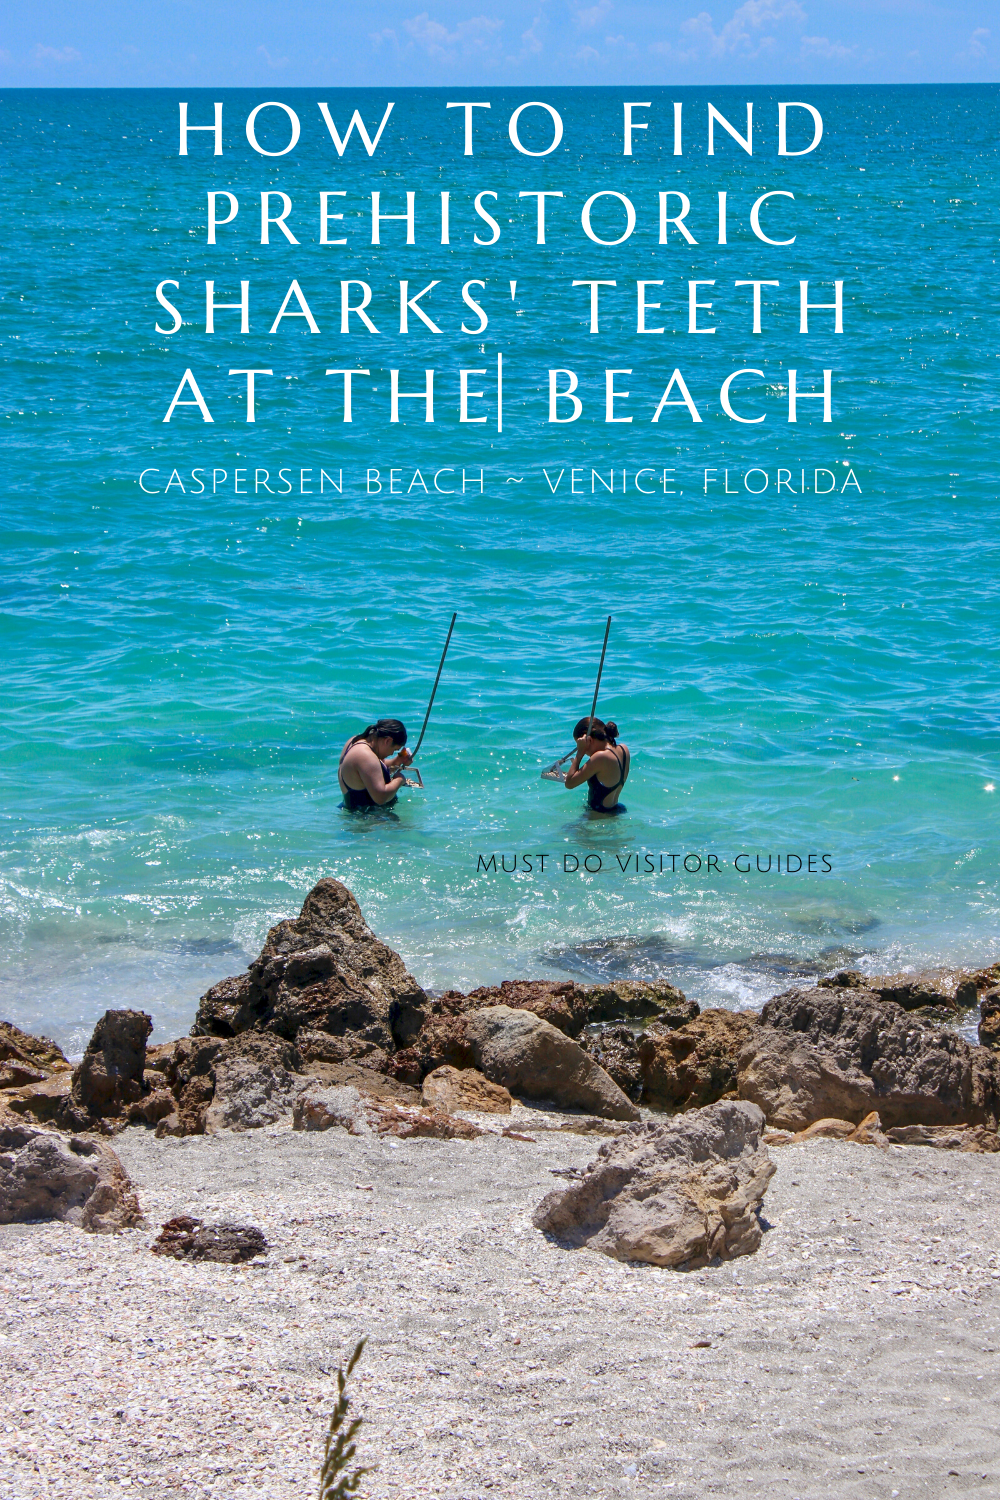 How To Find Sharks Teeth At The Beach In 2020 Florida Beaches Vacation Sarasota Florida Beach Perfect Beach Vacation